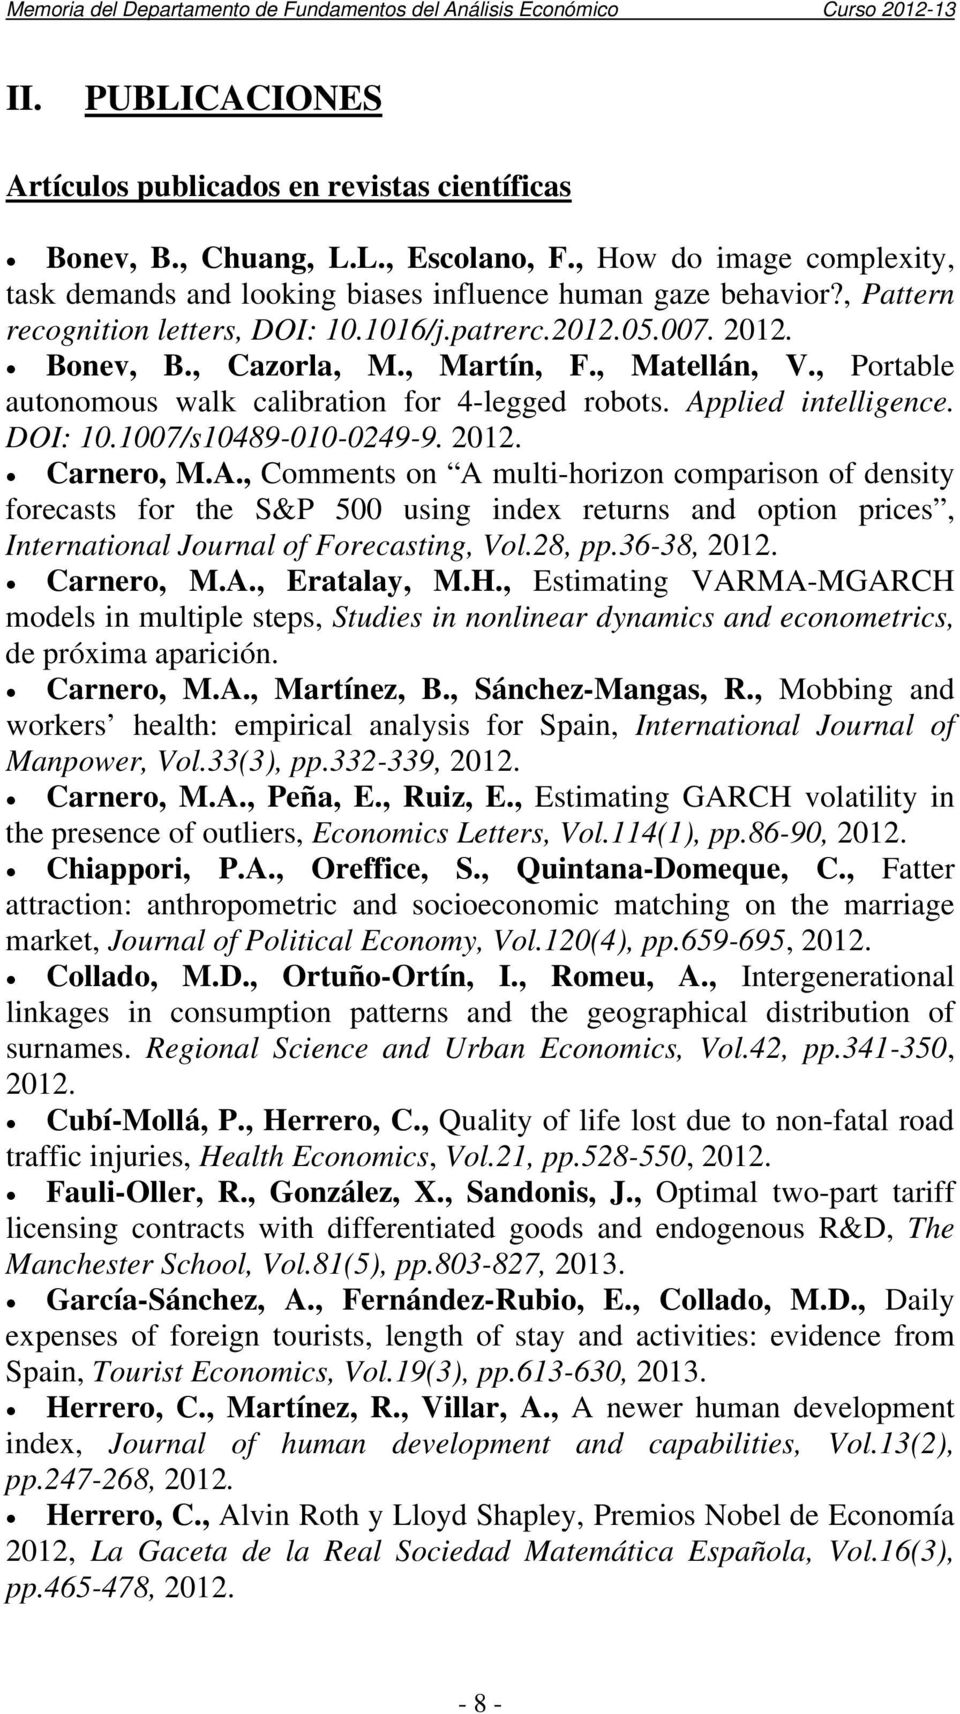 Applied intelligence. DOI: 10.1007/s10489-010-0249-9. 2012. Carnero, M.A., Comments on A multi-horizon comparison of density forecasts for the S&P 500 using index returns and option prices, International Journal of Forecasting, Vol.